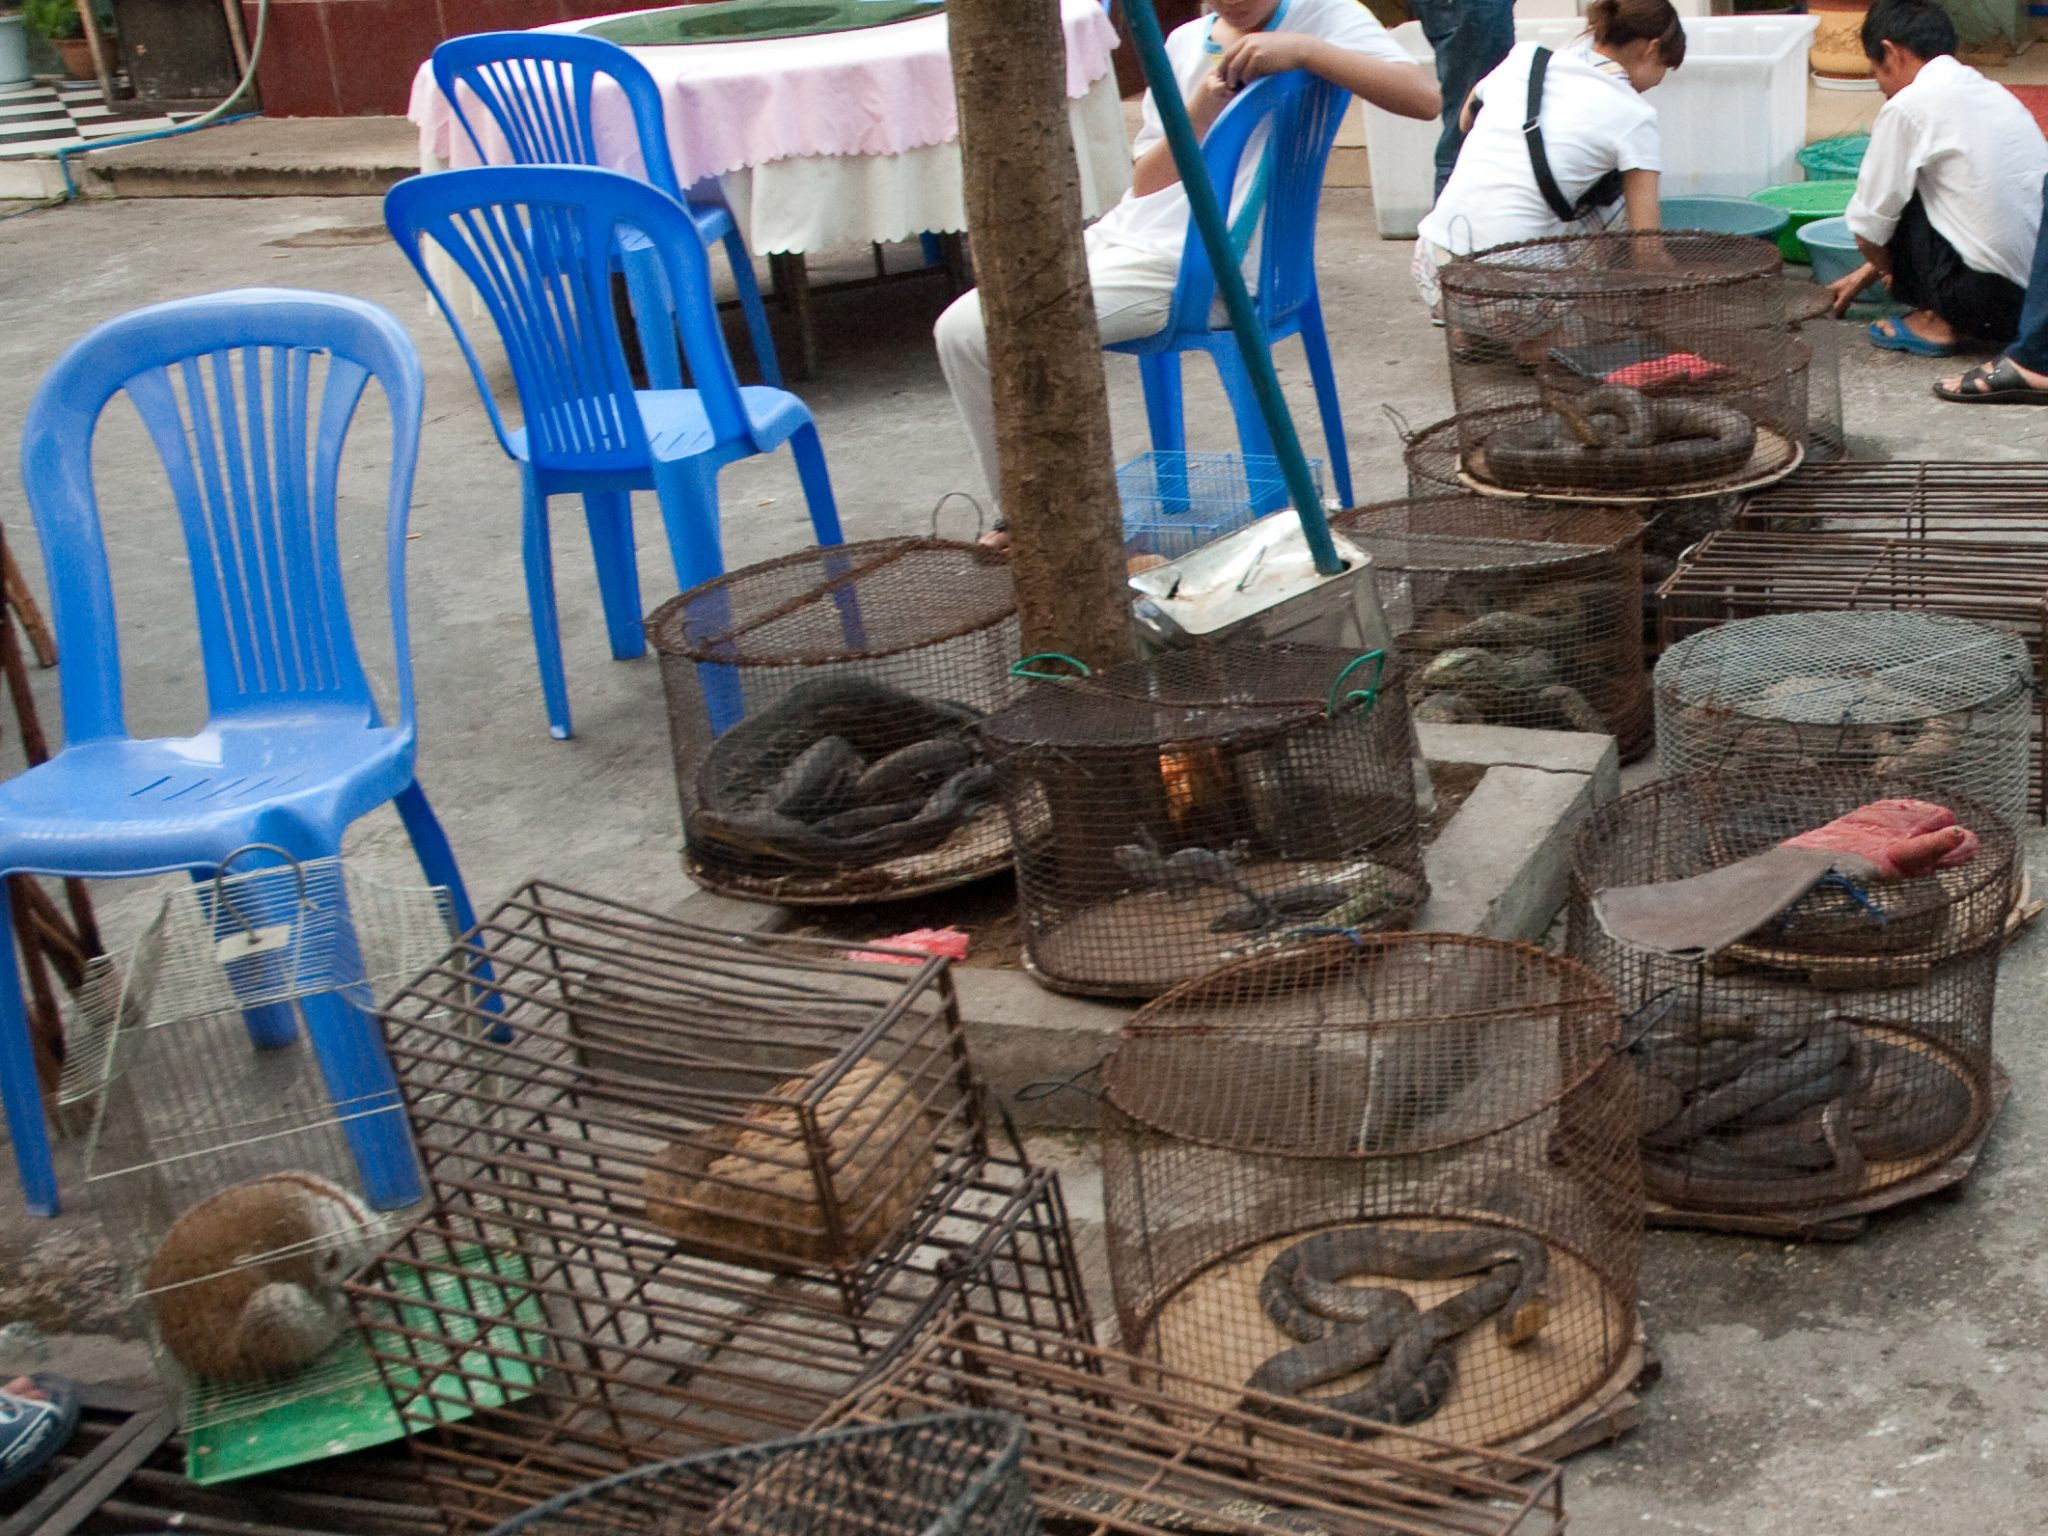 Markets selling live animals, or parts of wild animals, play a particular role in the transmission of zoonotic pathogens. Cropped version of photo by Dan Bennett, CC BY 2.0 via Wikimedia Commons.